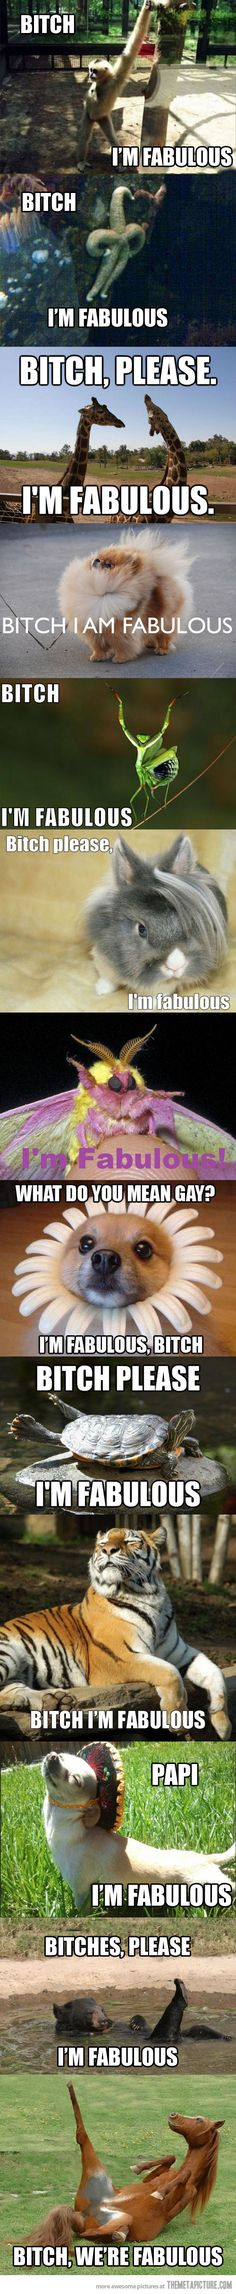 Fabulous animals…this made me lol haha